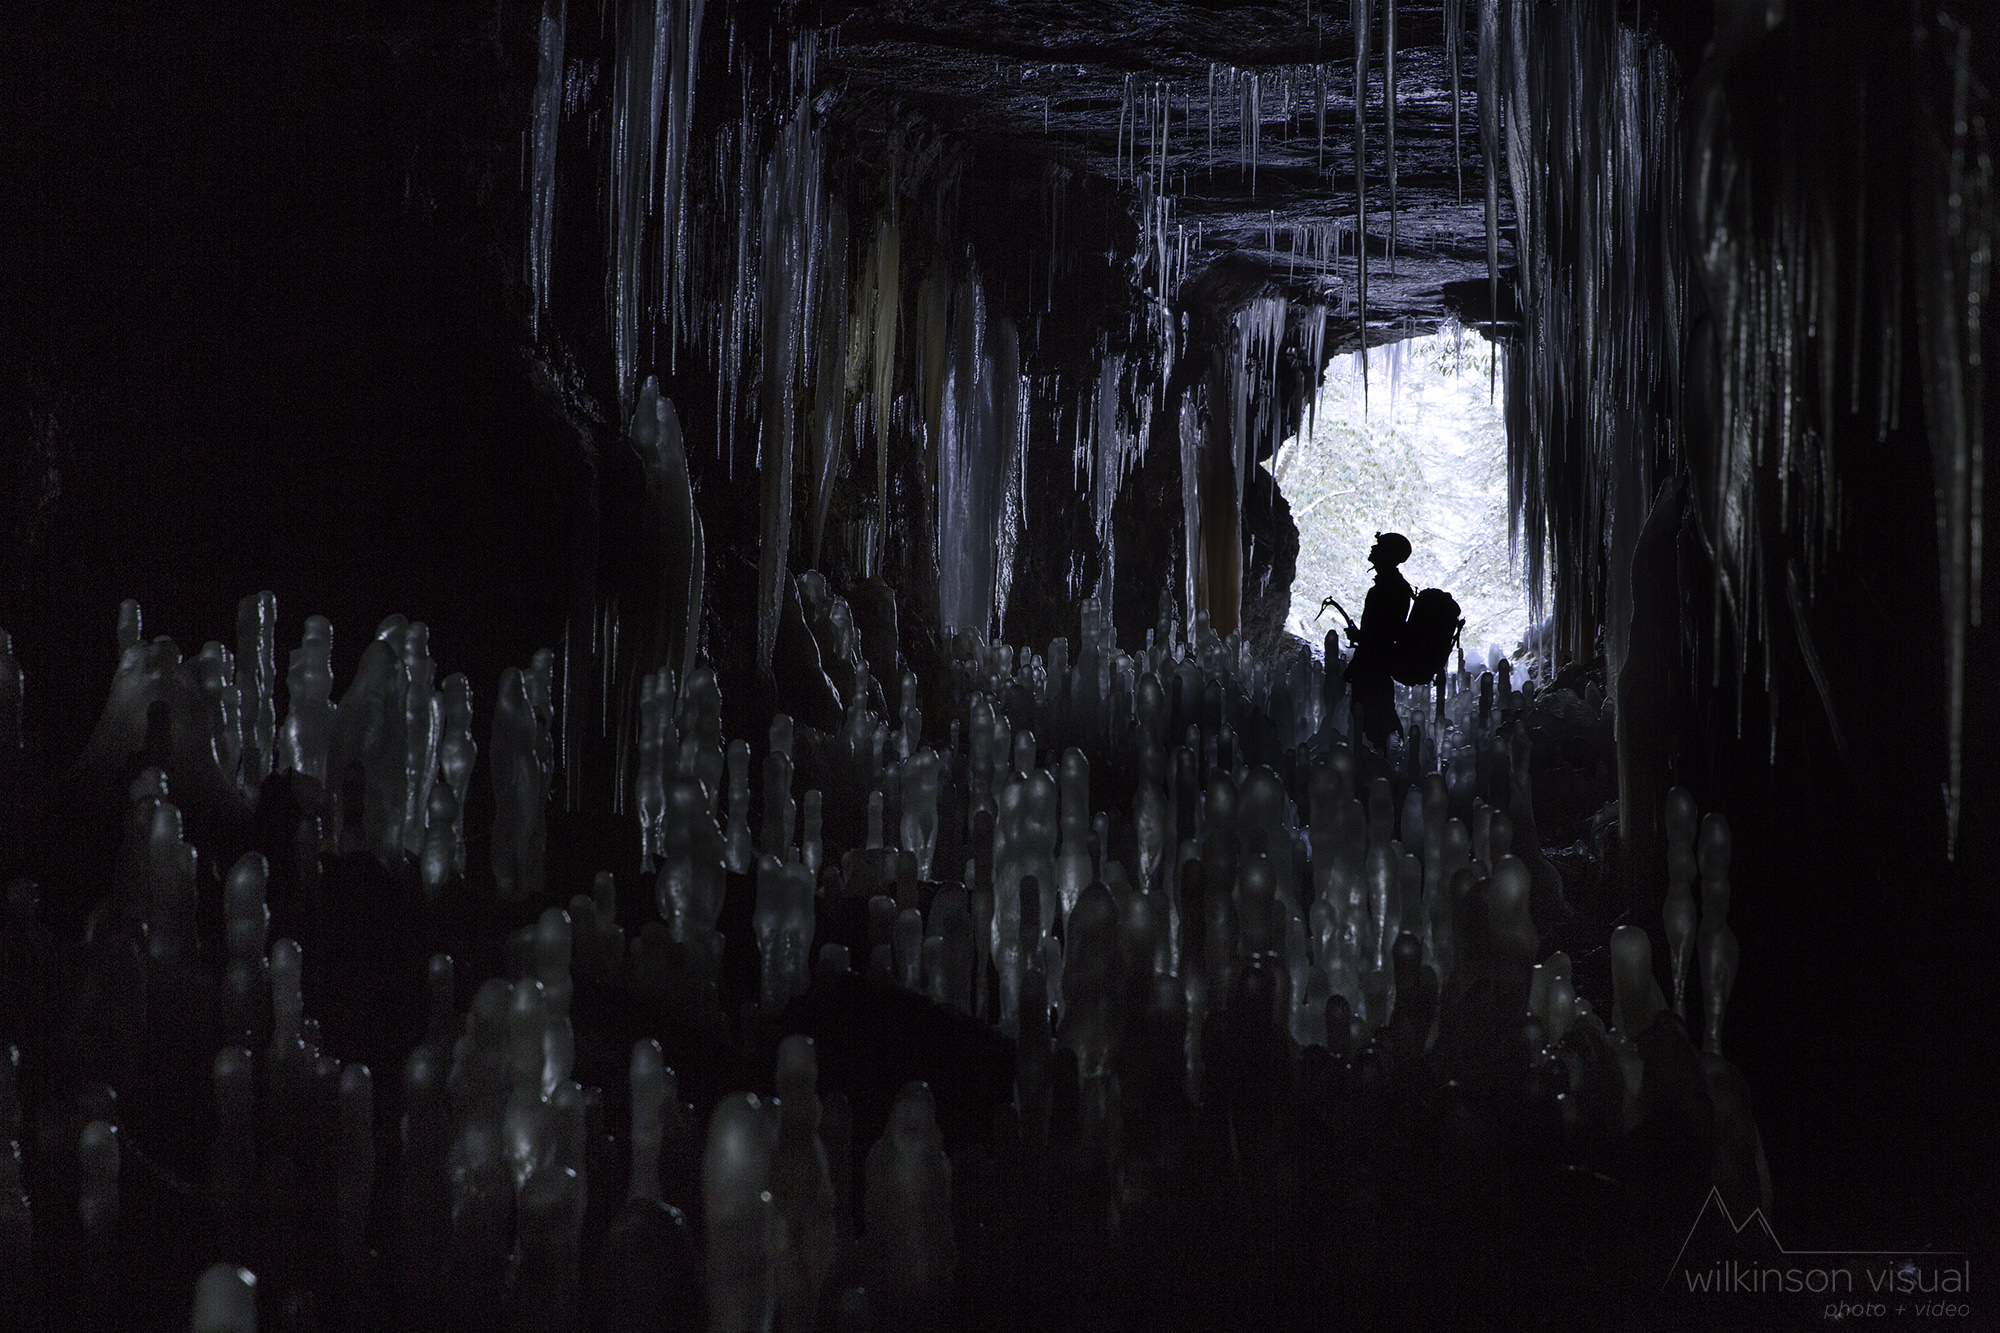 A hidden ice cave near the Red River Gorge.